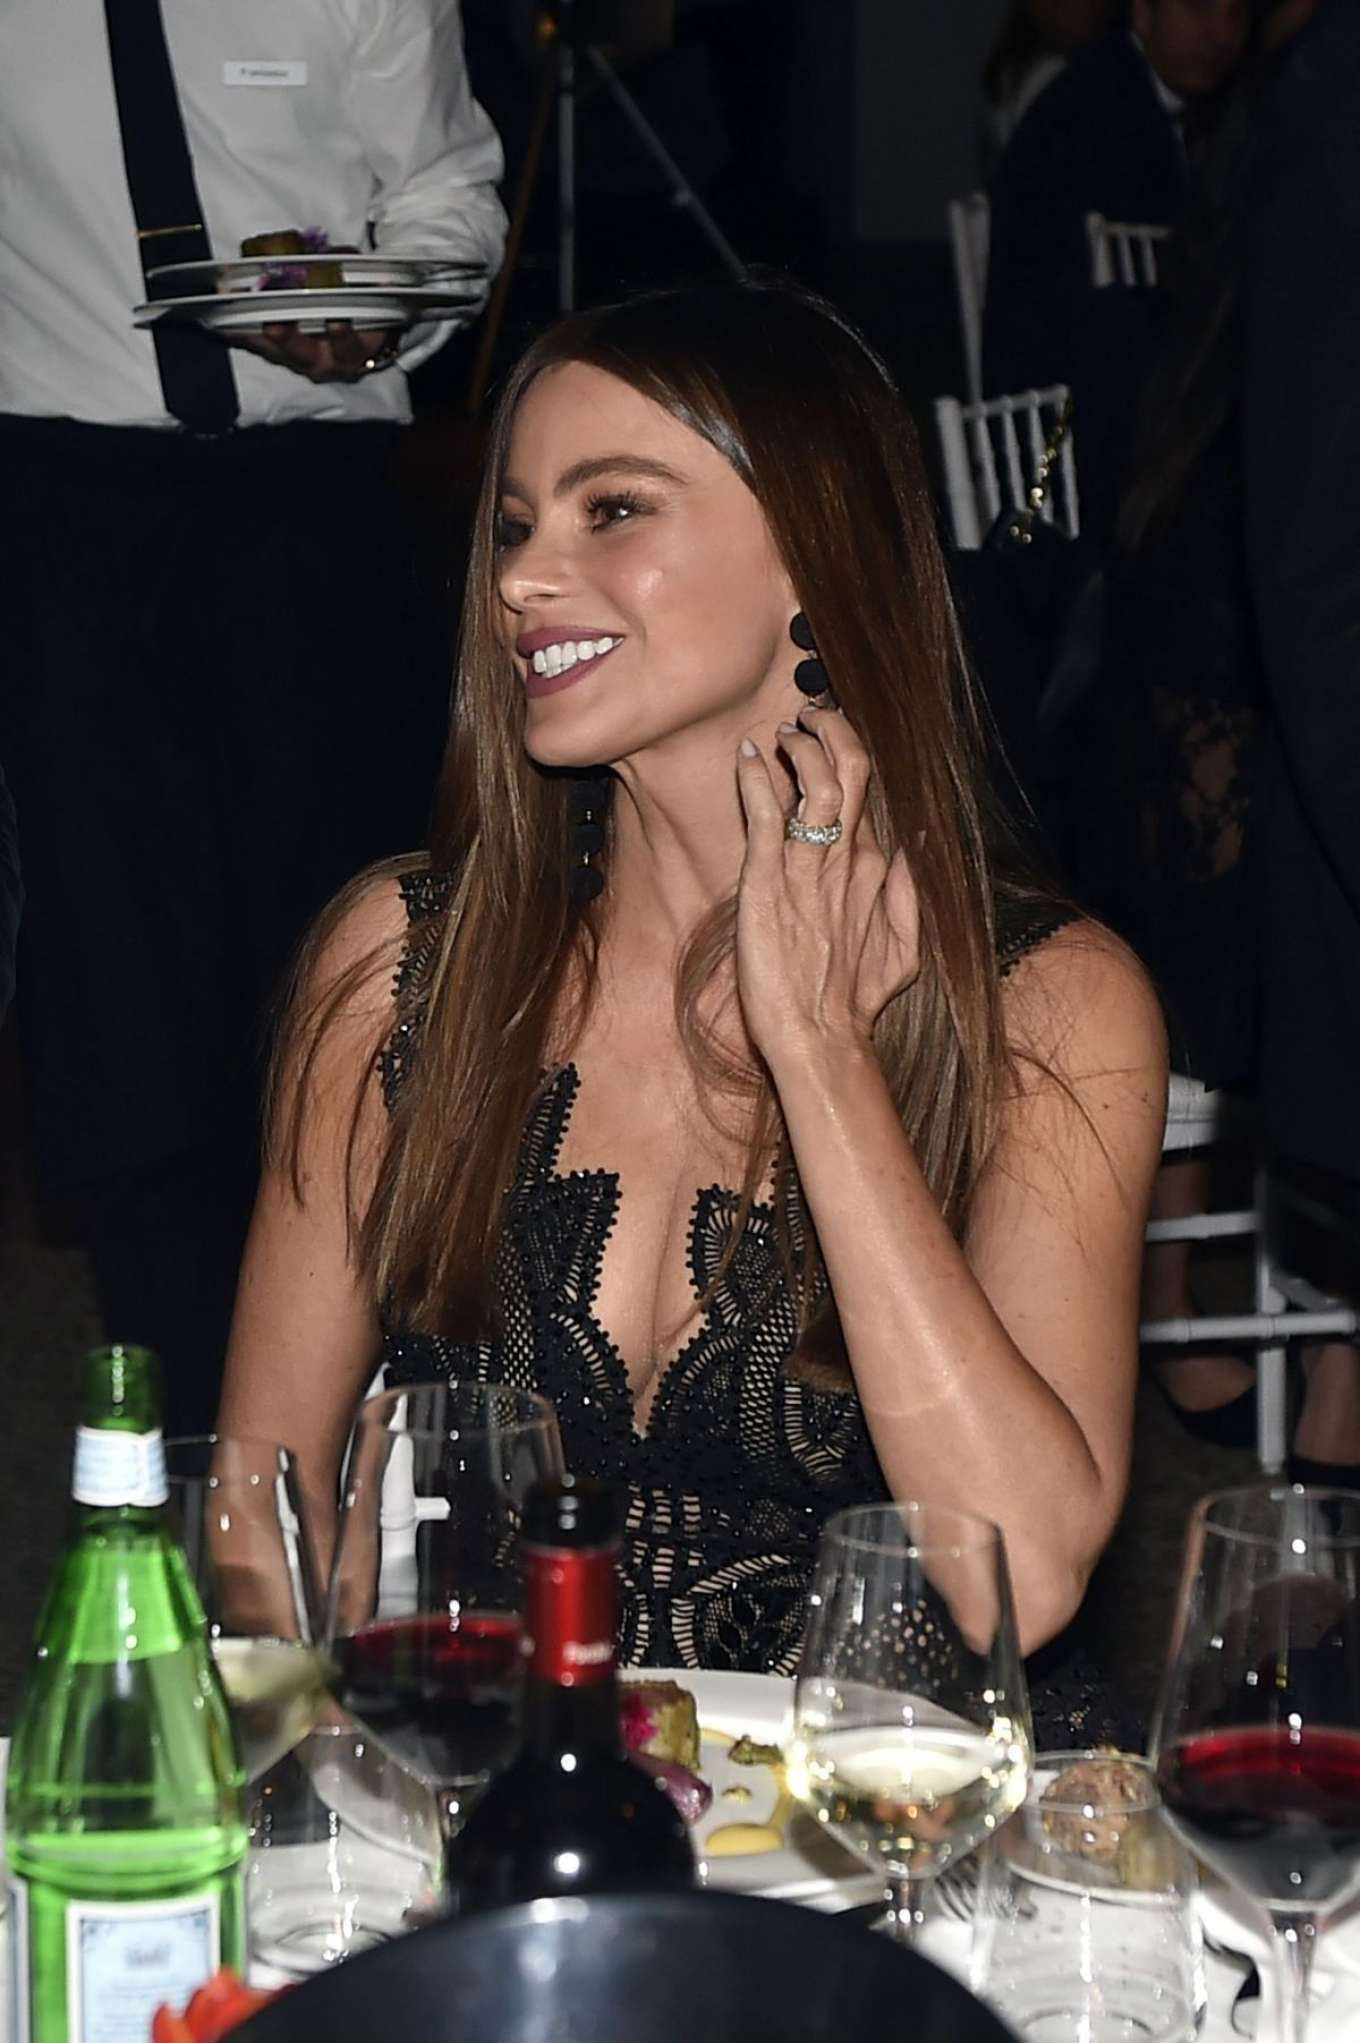 Sofia Vergara – Bent Gala Dinner in Rome